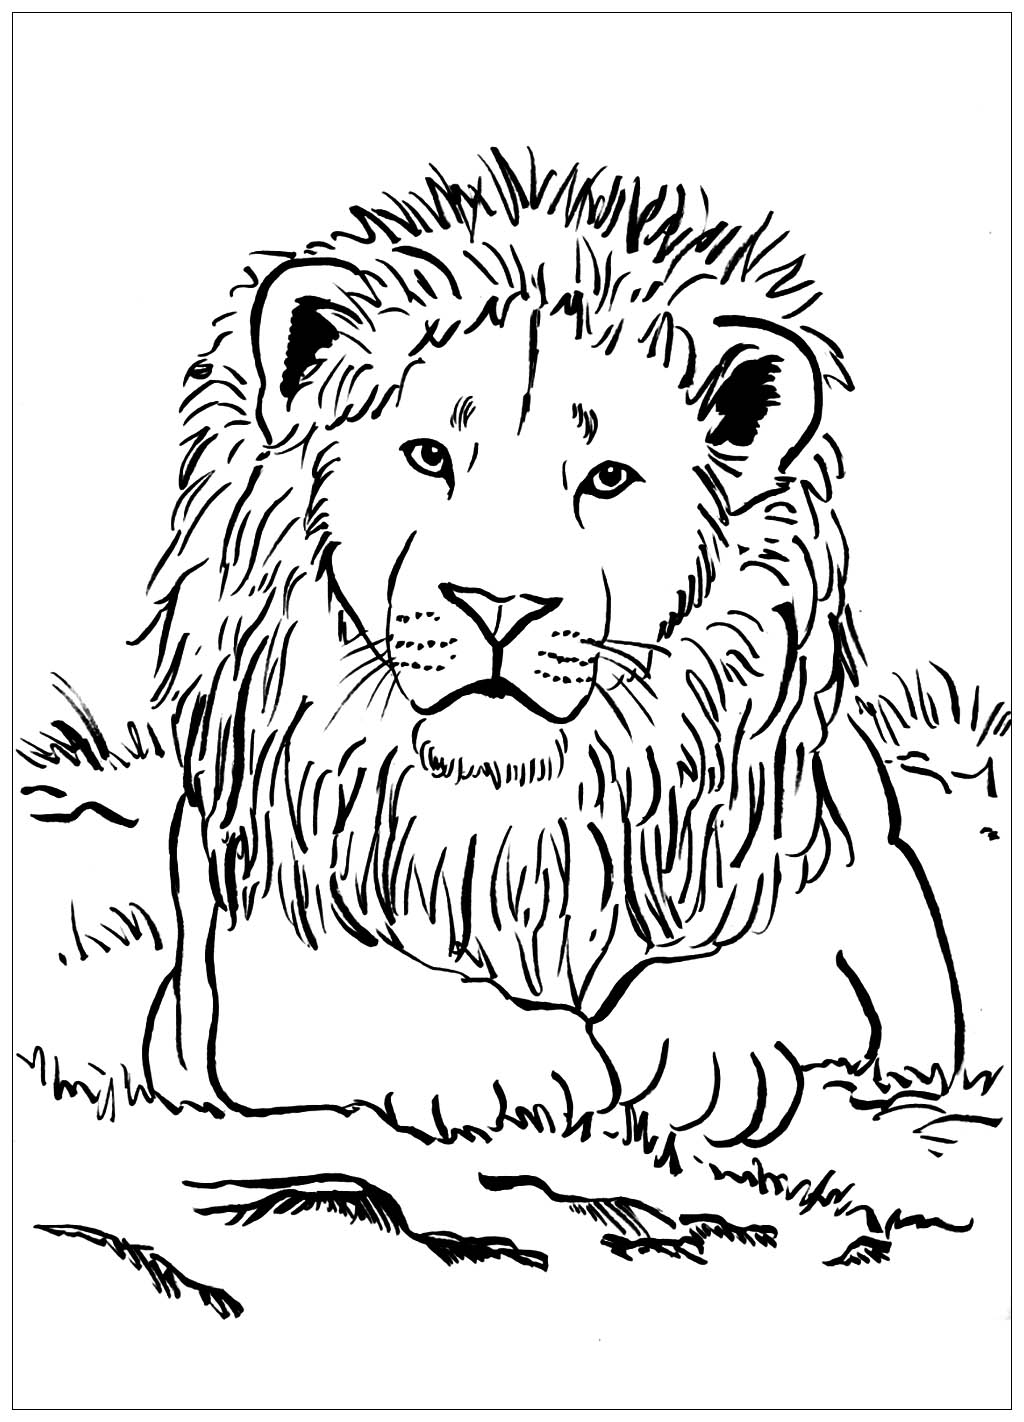 printable pictures of lions lion to print for free lion kids coloring pages lions pictures of printable